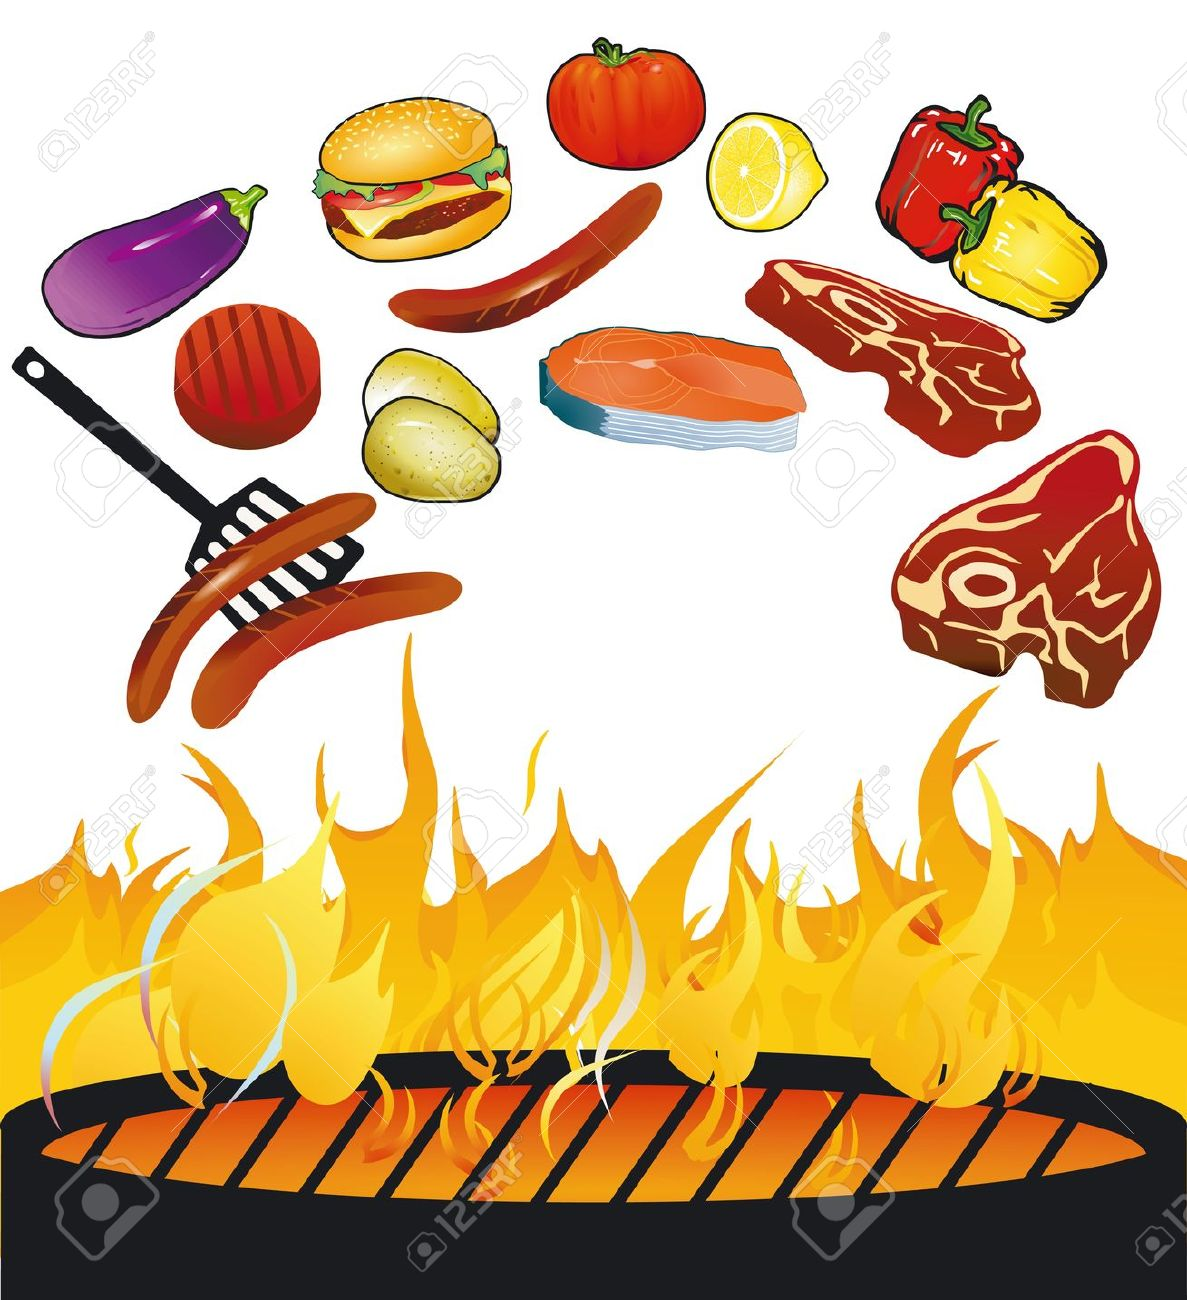 Barbecue clipart bbq food, Barbecue bbq food Transparent.